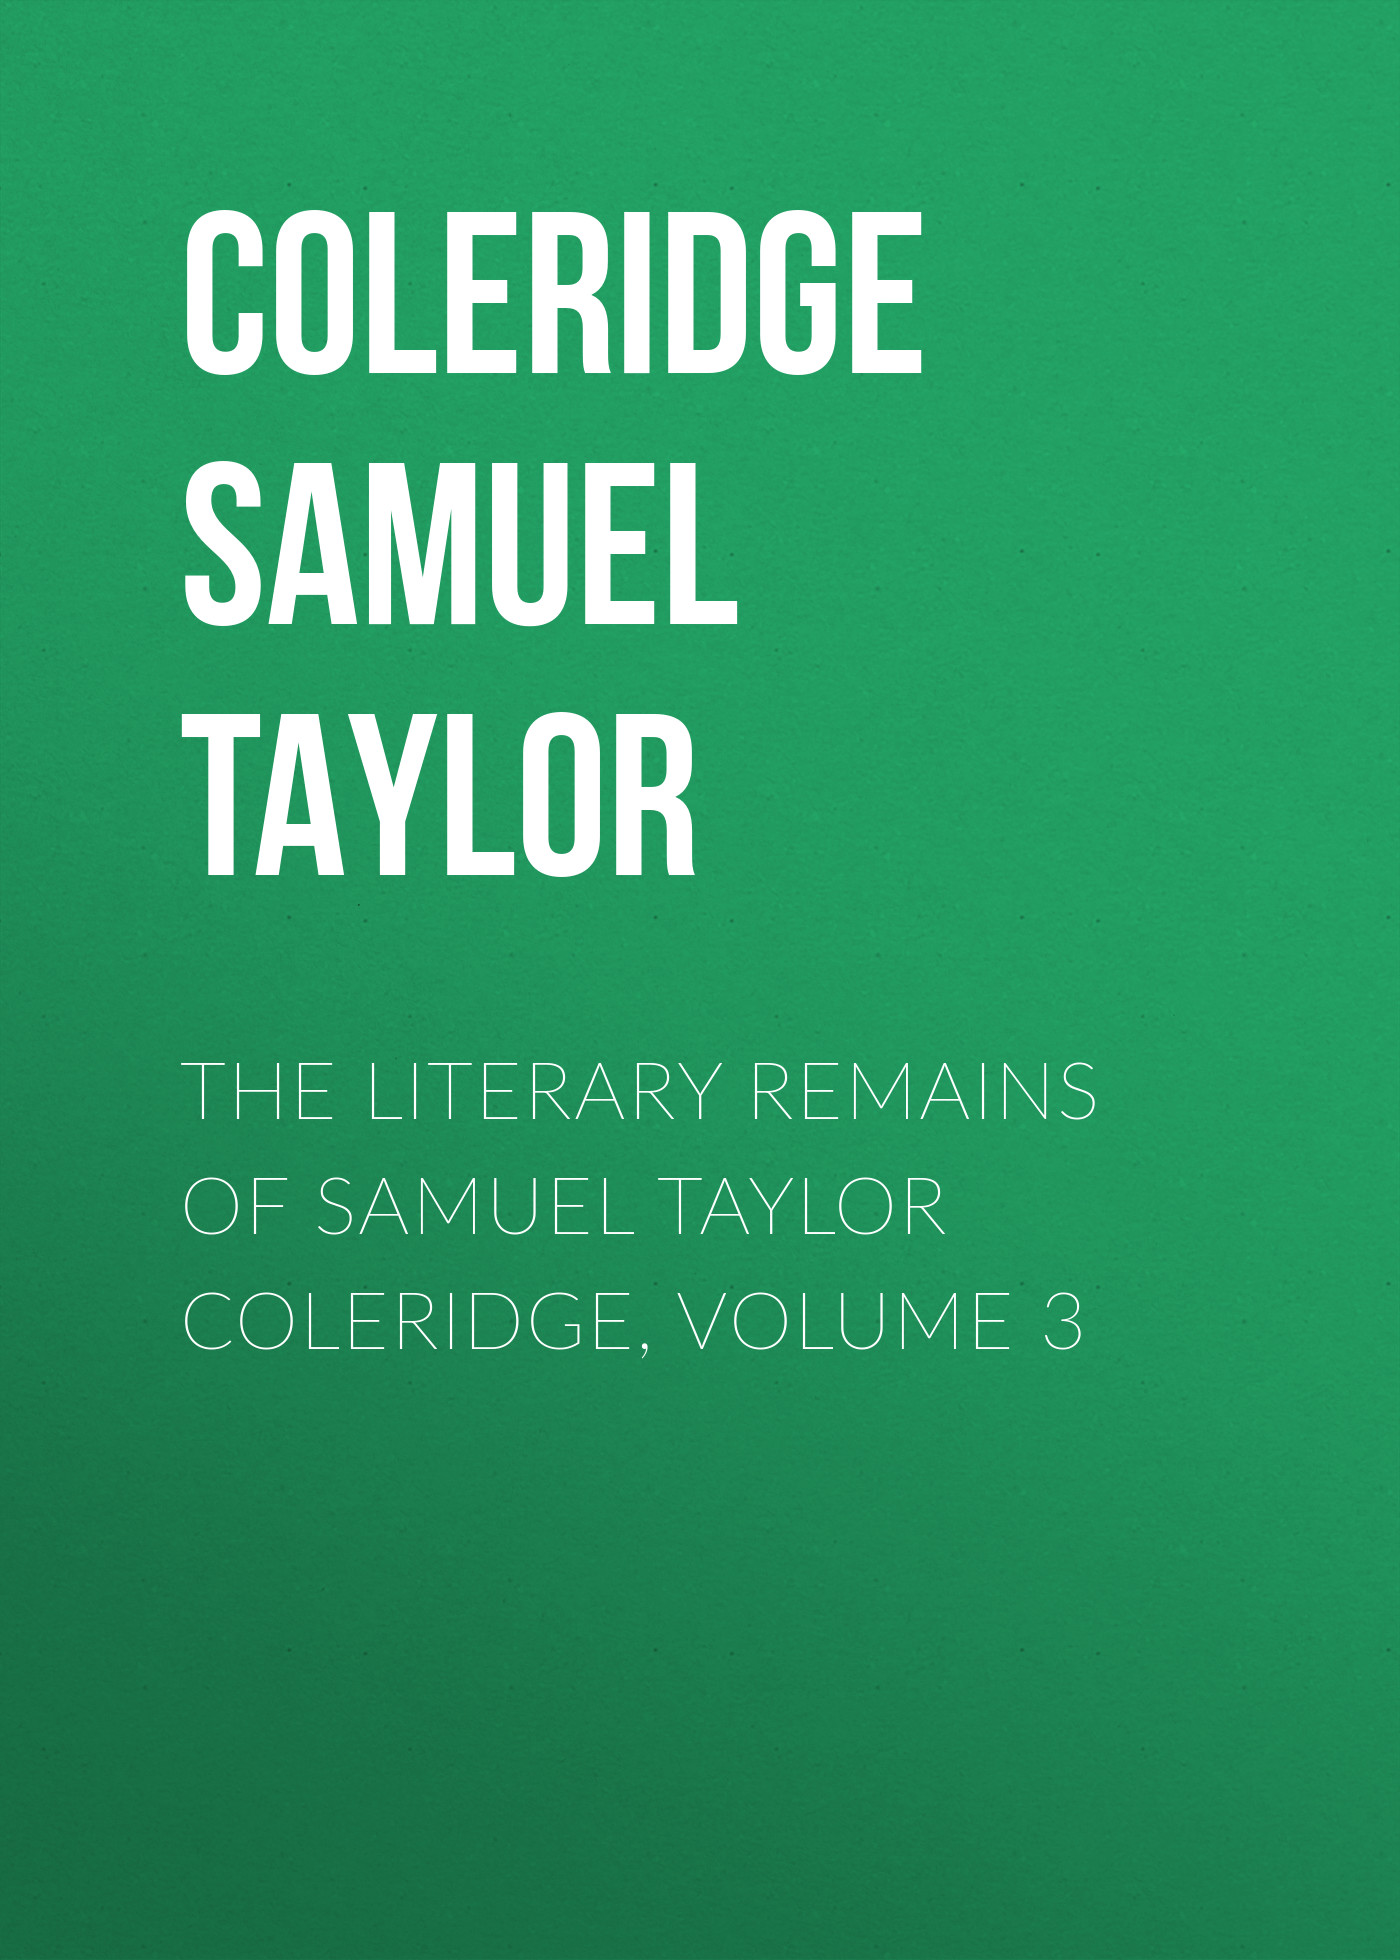 Coleridge Samuel Taylor The Literary Remains of Samuel Taylor Coleridge, Volume 3